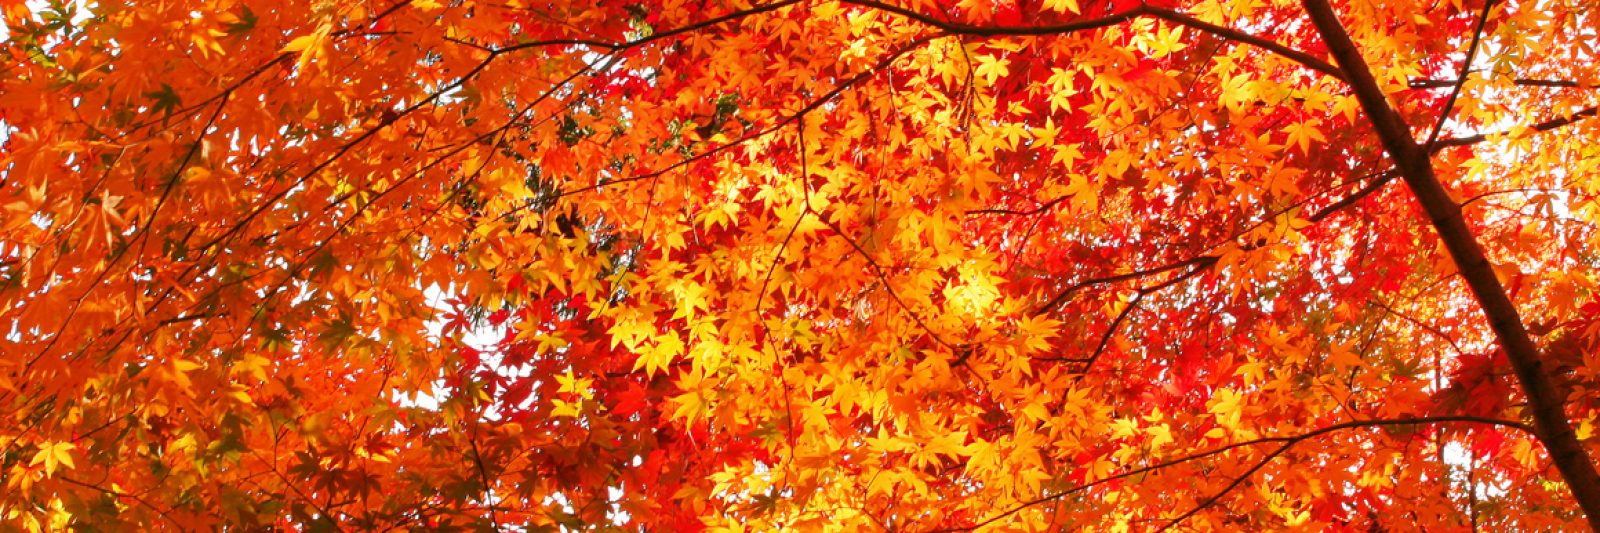 Fall Leaves - Claycomb Chalets